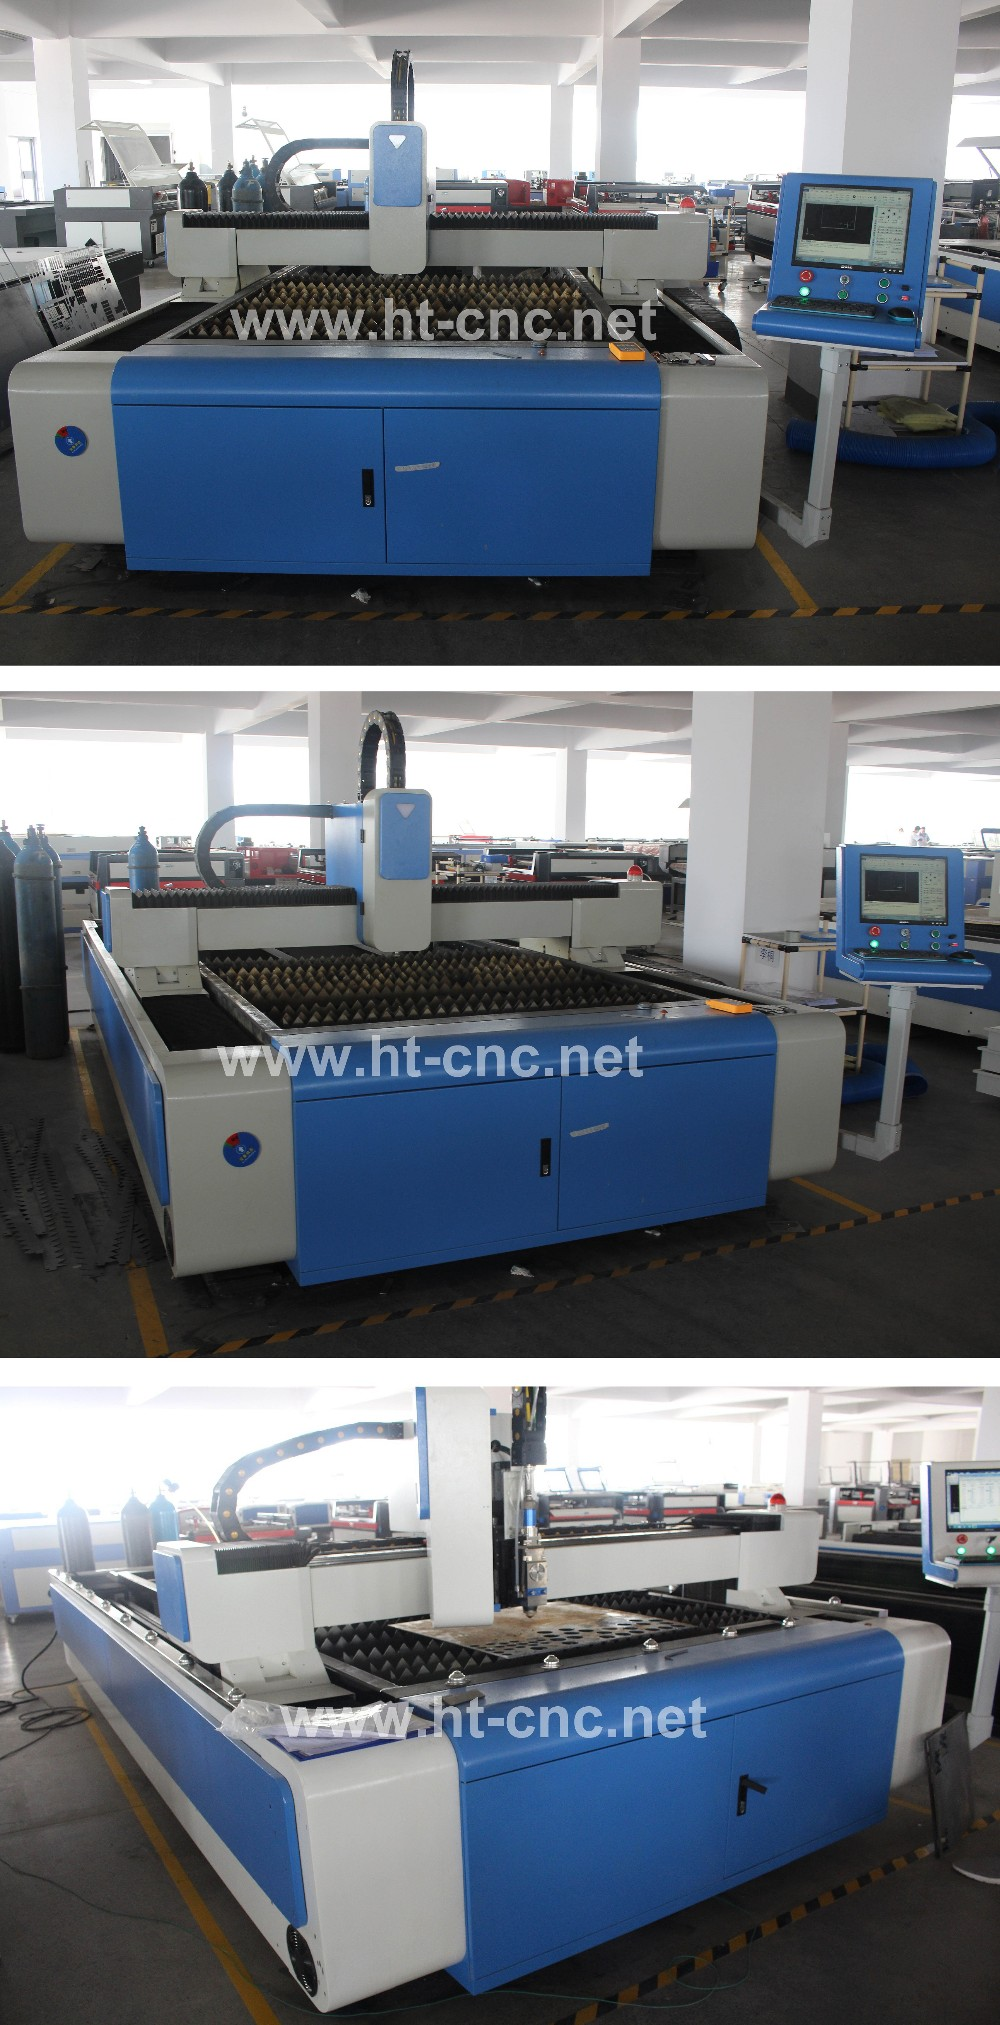 Best parts 500W/750W1000W 1530 fiber laser cutting machine for stainless steel